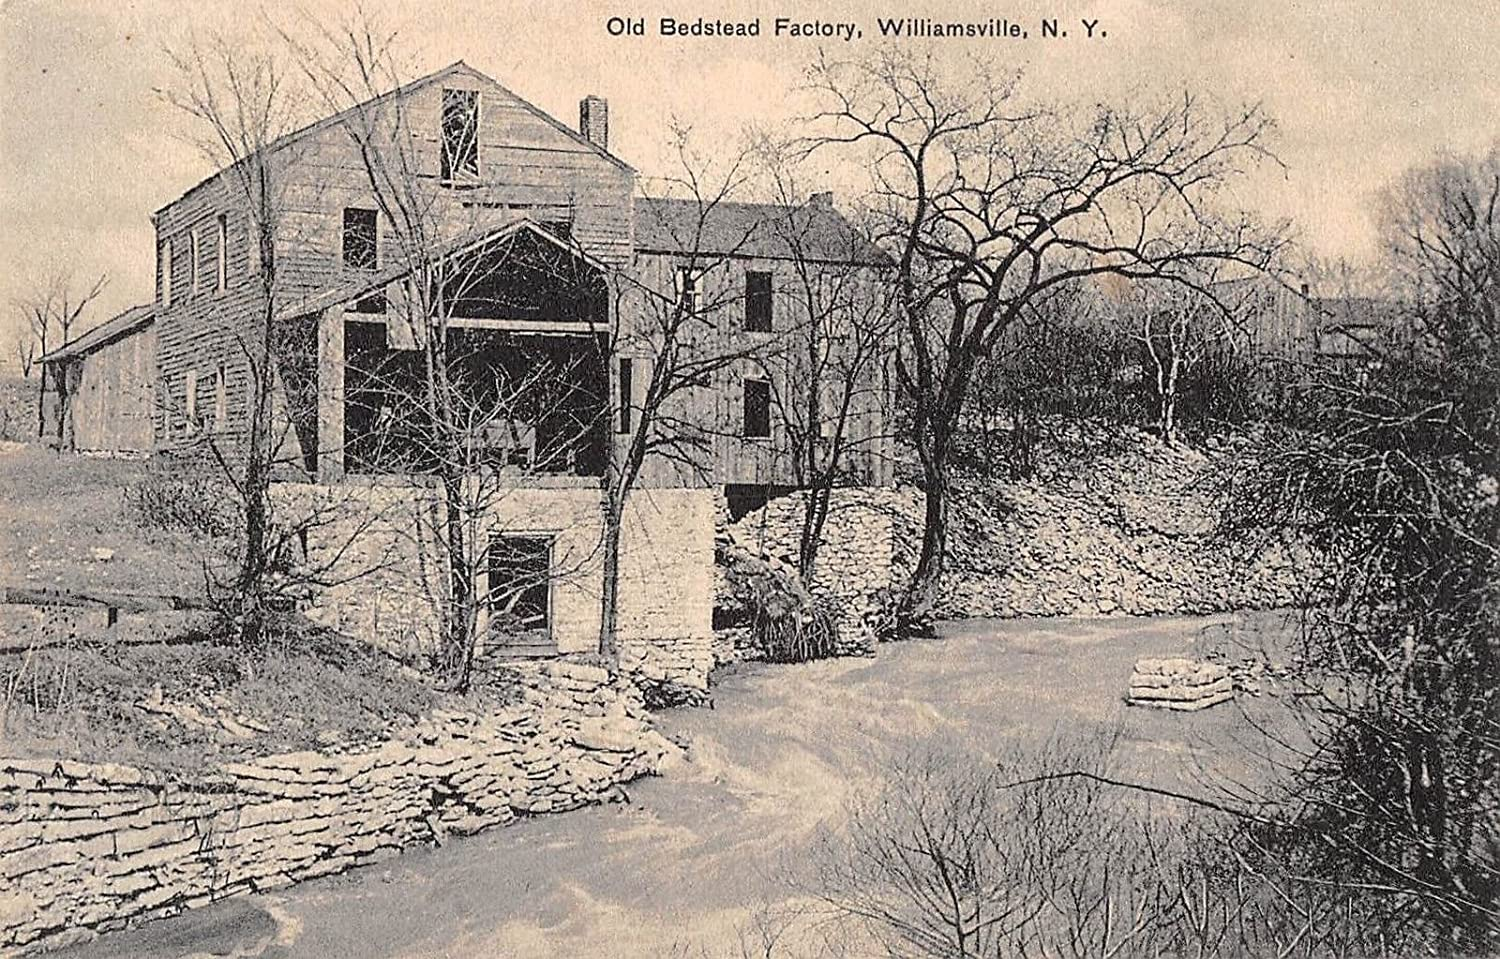 Old Bedstead Factory in Williamsville, New York